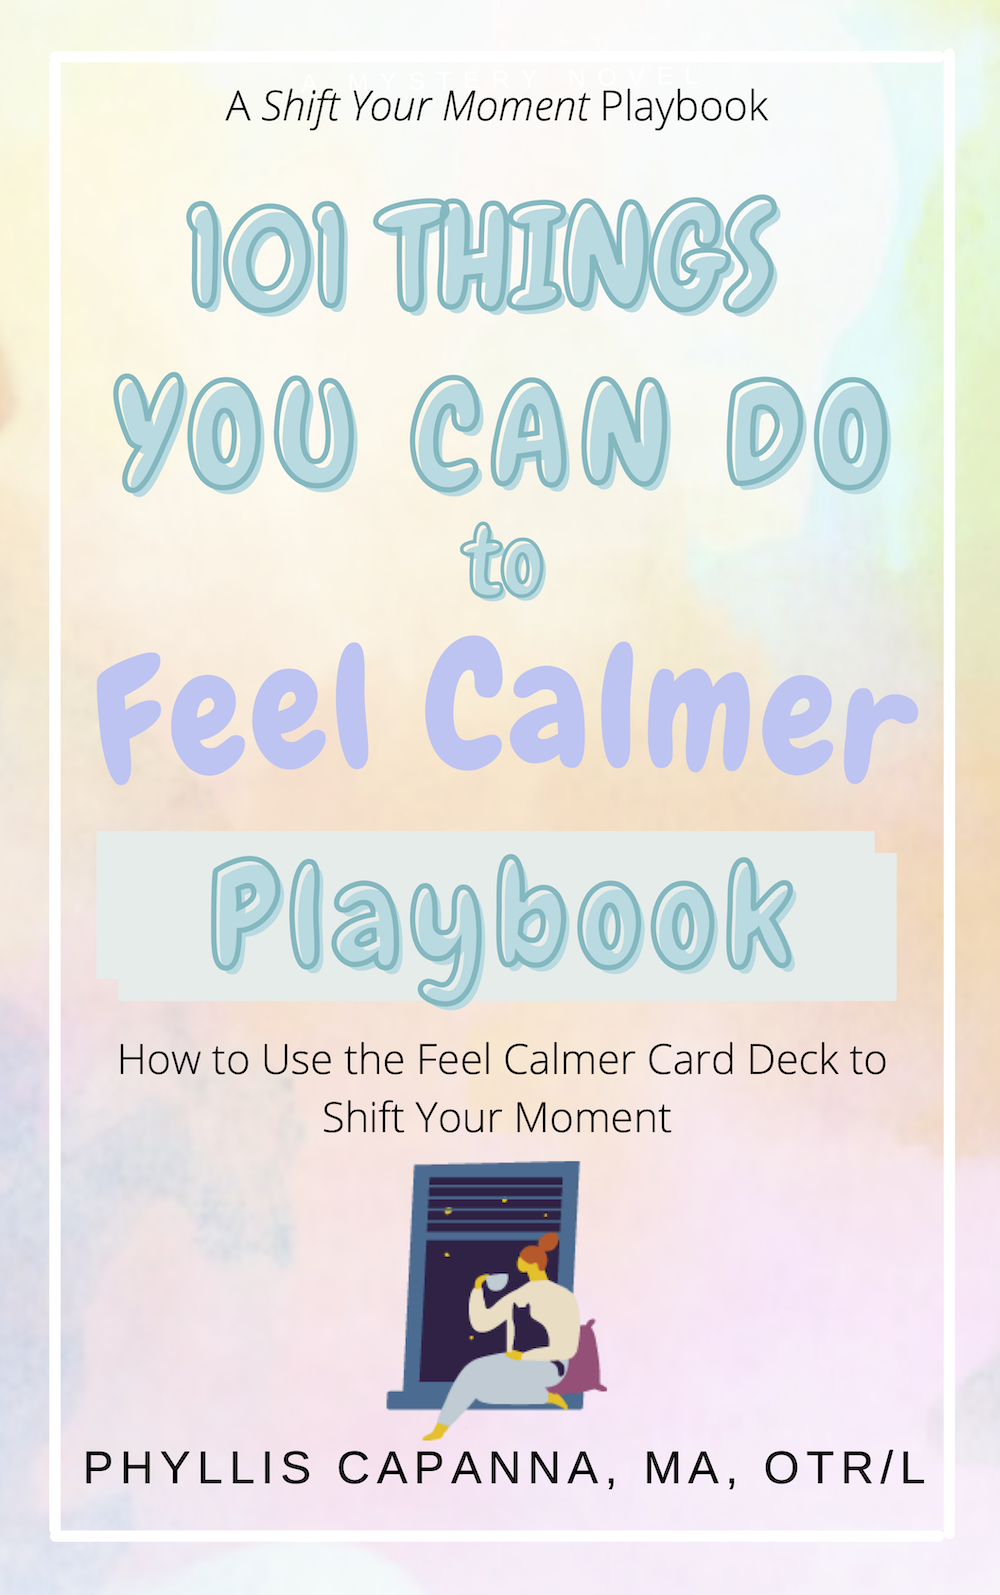 101 Things Feel Calmer Playbook Cover FINAL